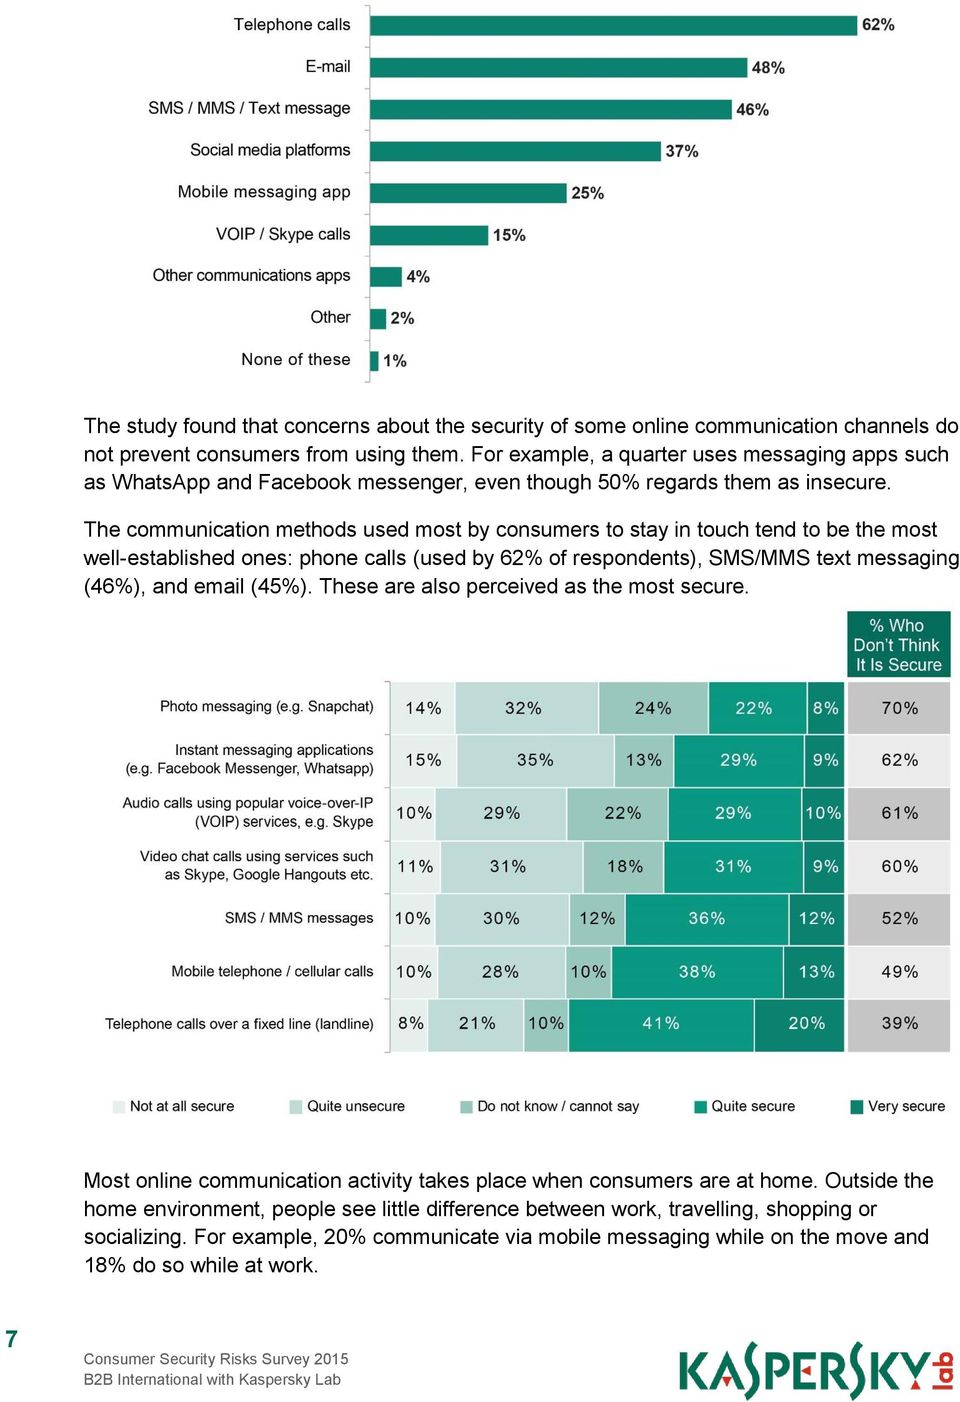 The communication methods used most by consumers to stay in touch tend to be the most well-established ones: phone calls (used by 62% of respondents), SMS/MMS text messaging (46%), and email